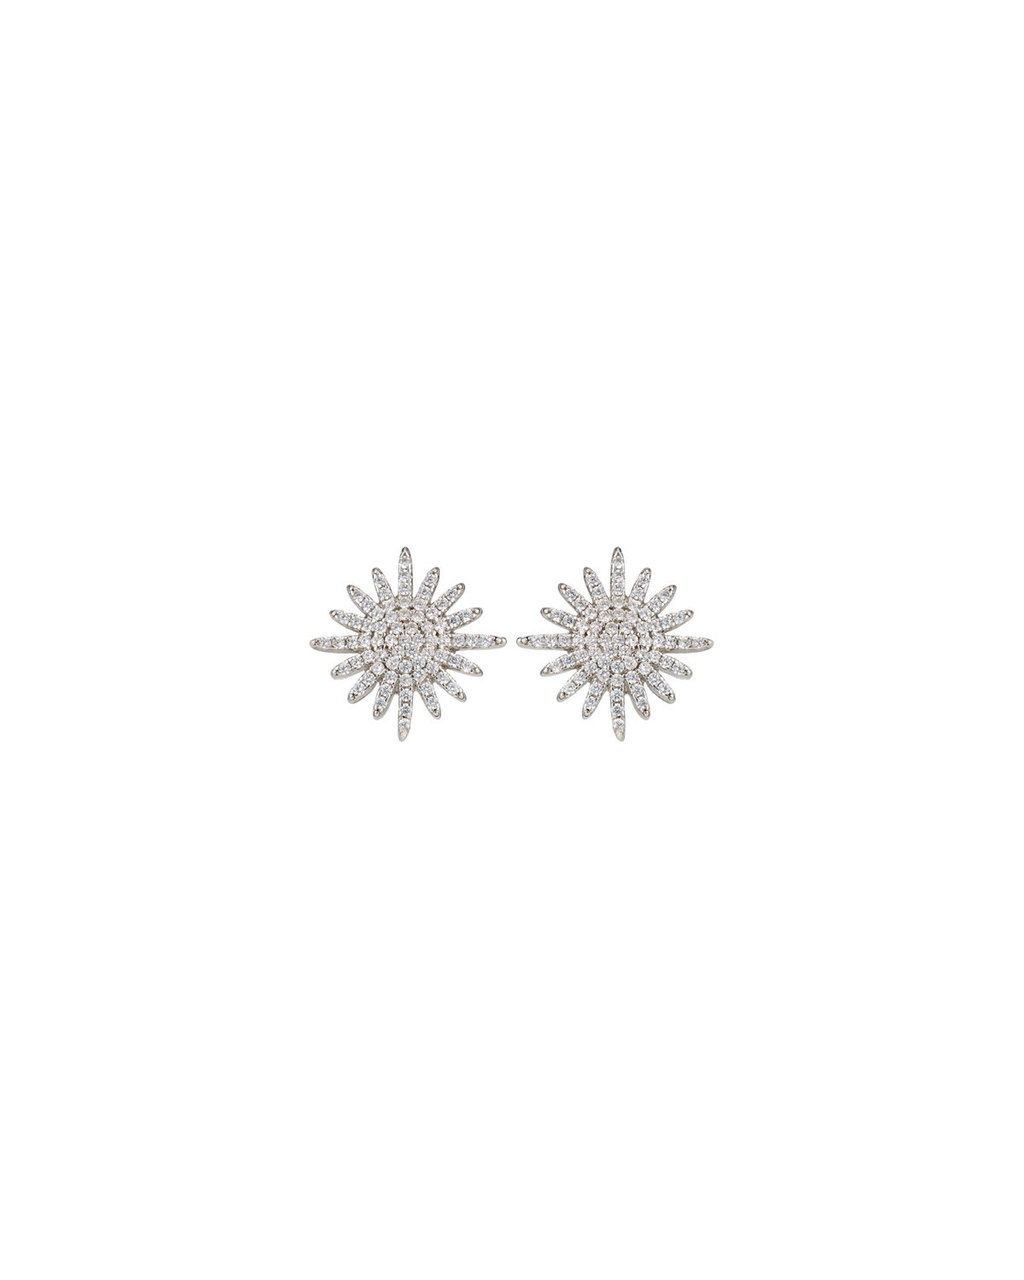 Cubic Zirconia Starburst Studs - predominant colour: silver; occasions: evening, occasion; style: stud; length: short; size: standard; material: chain/metal; fastening: pierced; finish: metallic; embellishment: crystals/glass; season: s/s 2016; wardrobe: event